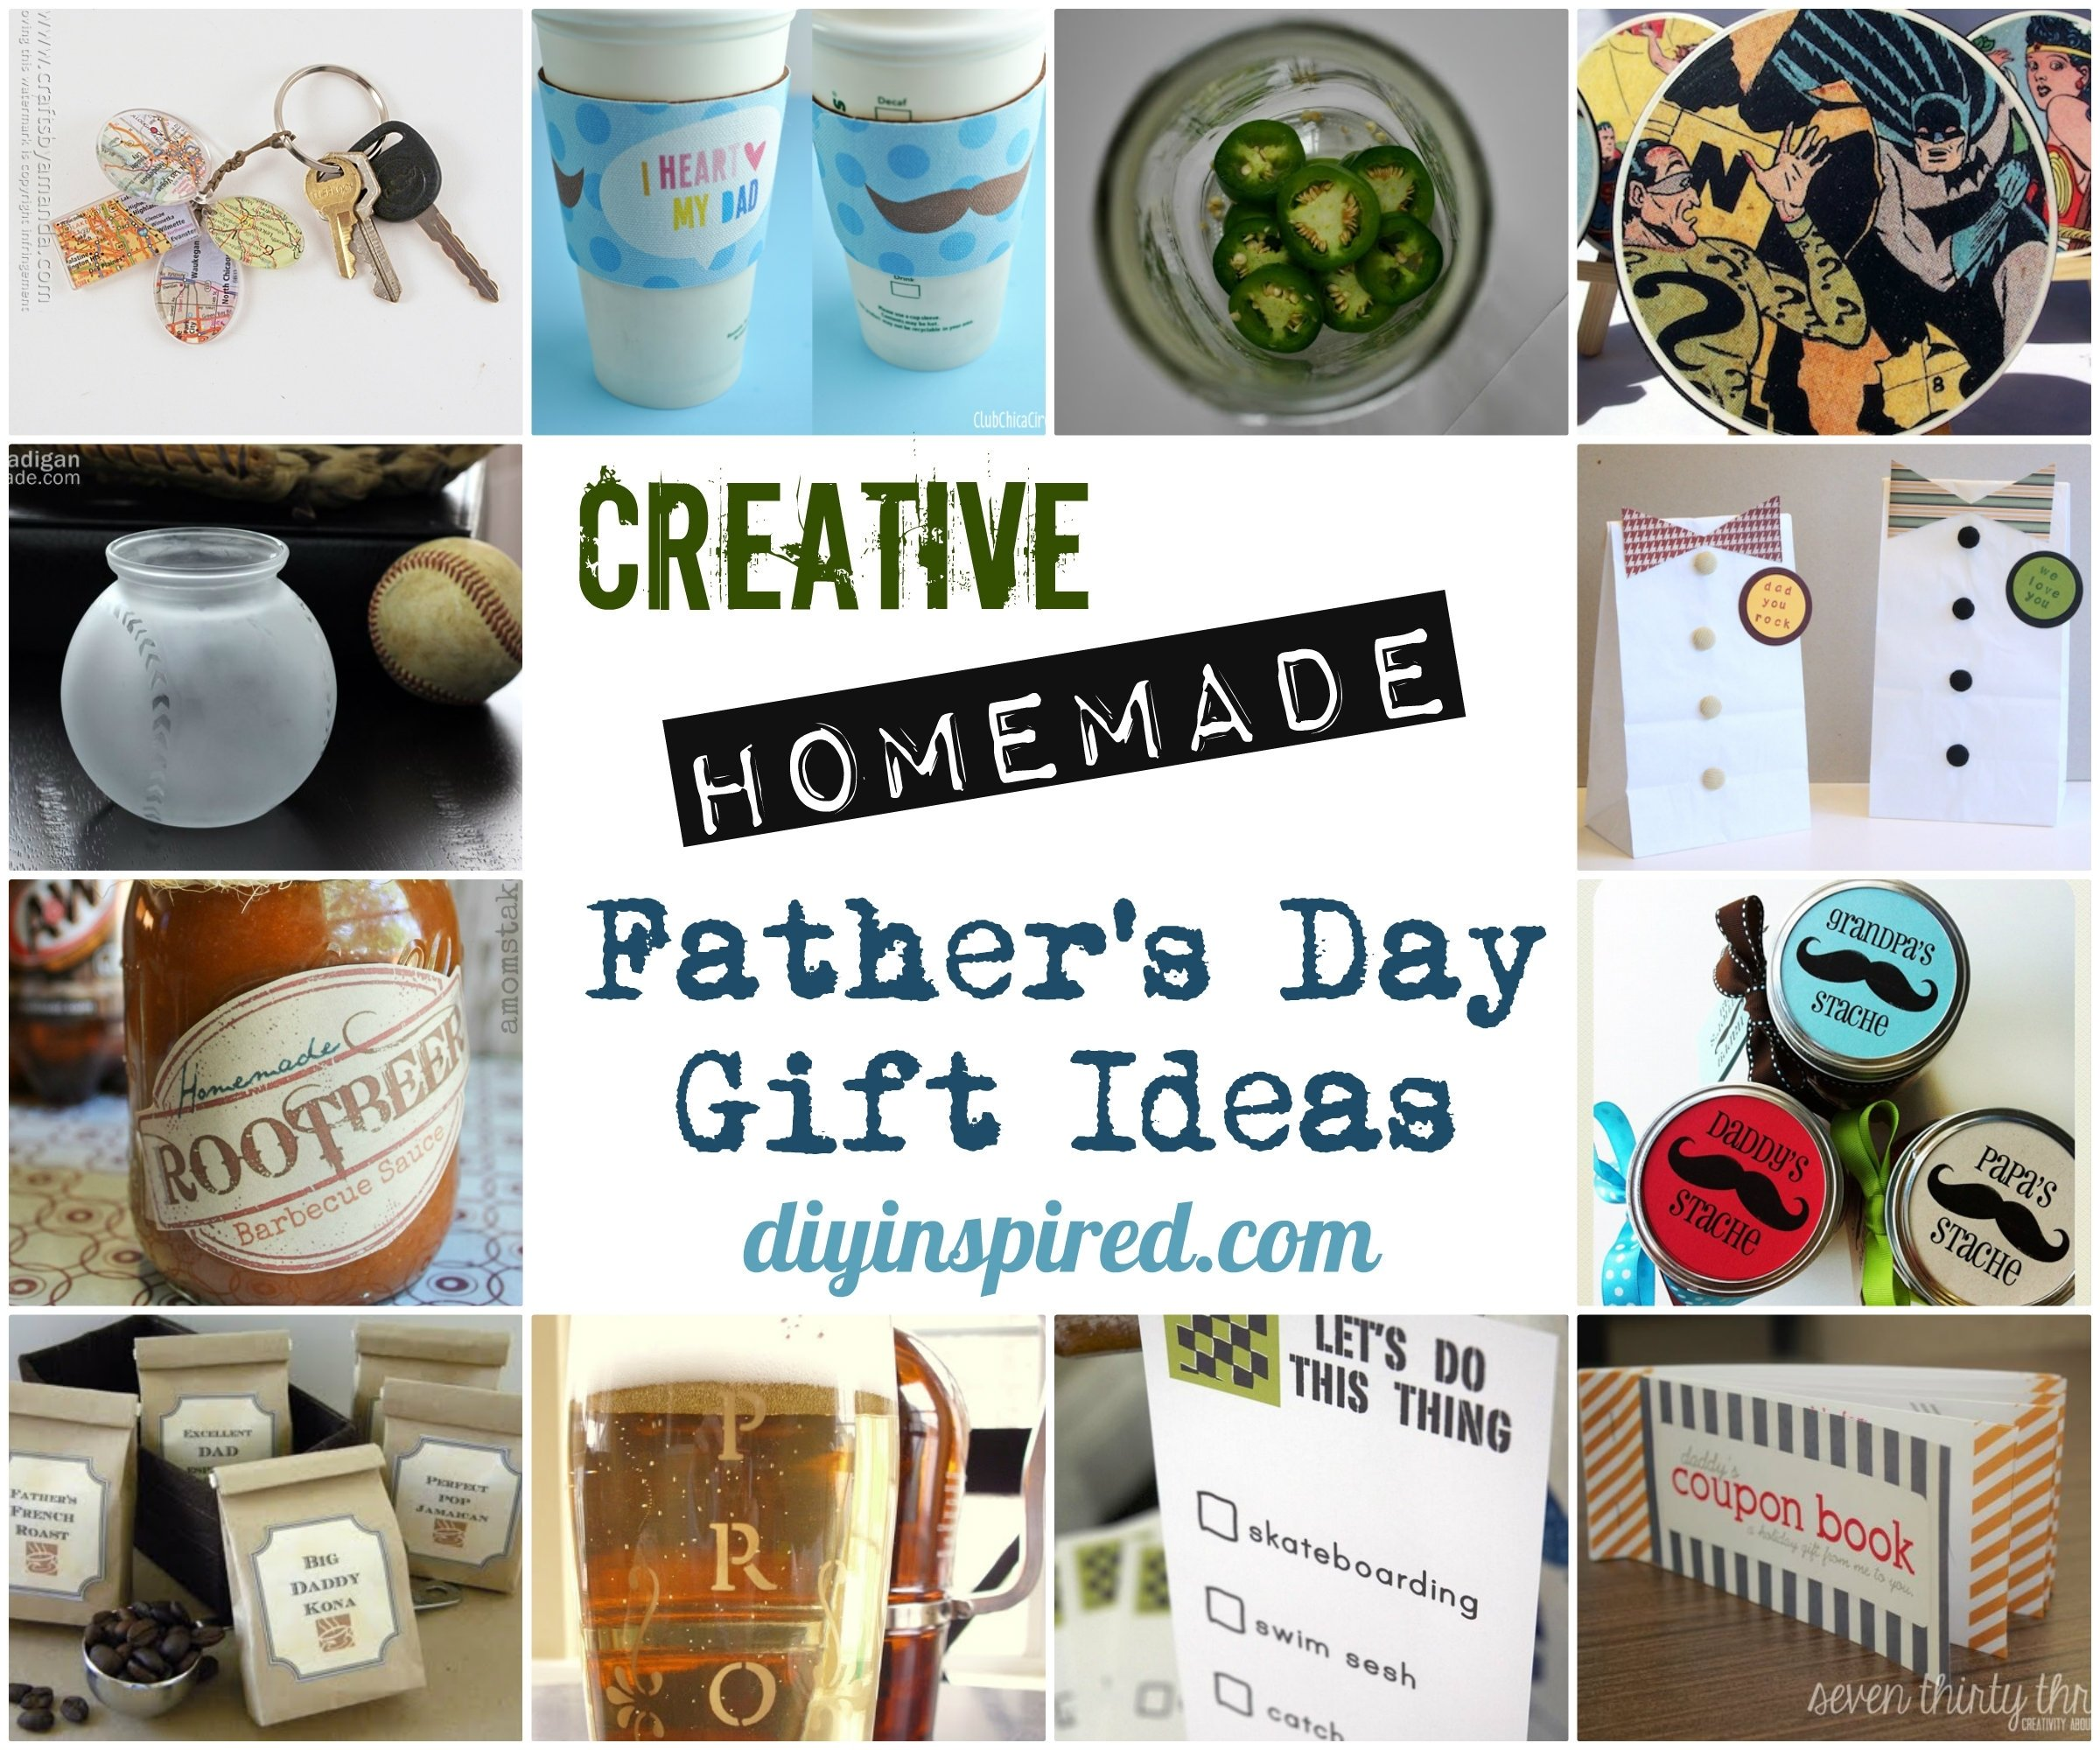 10 Great Gift Ideas For Fathers Day creative homemade fathers day gift ideas diy inspired 11 2020